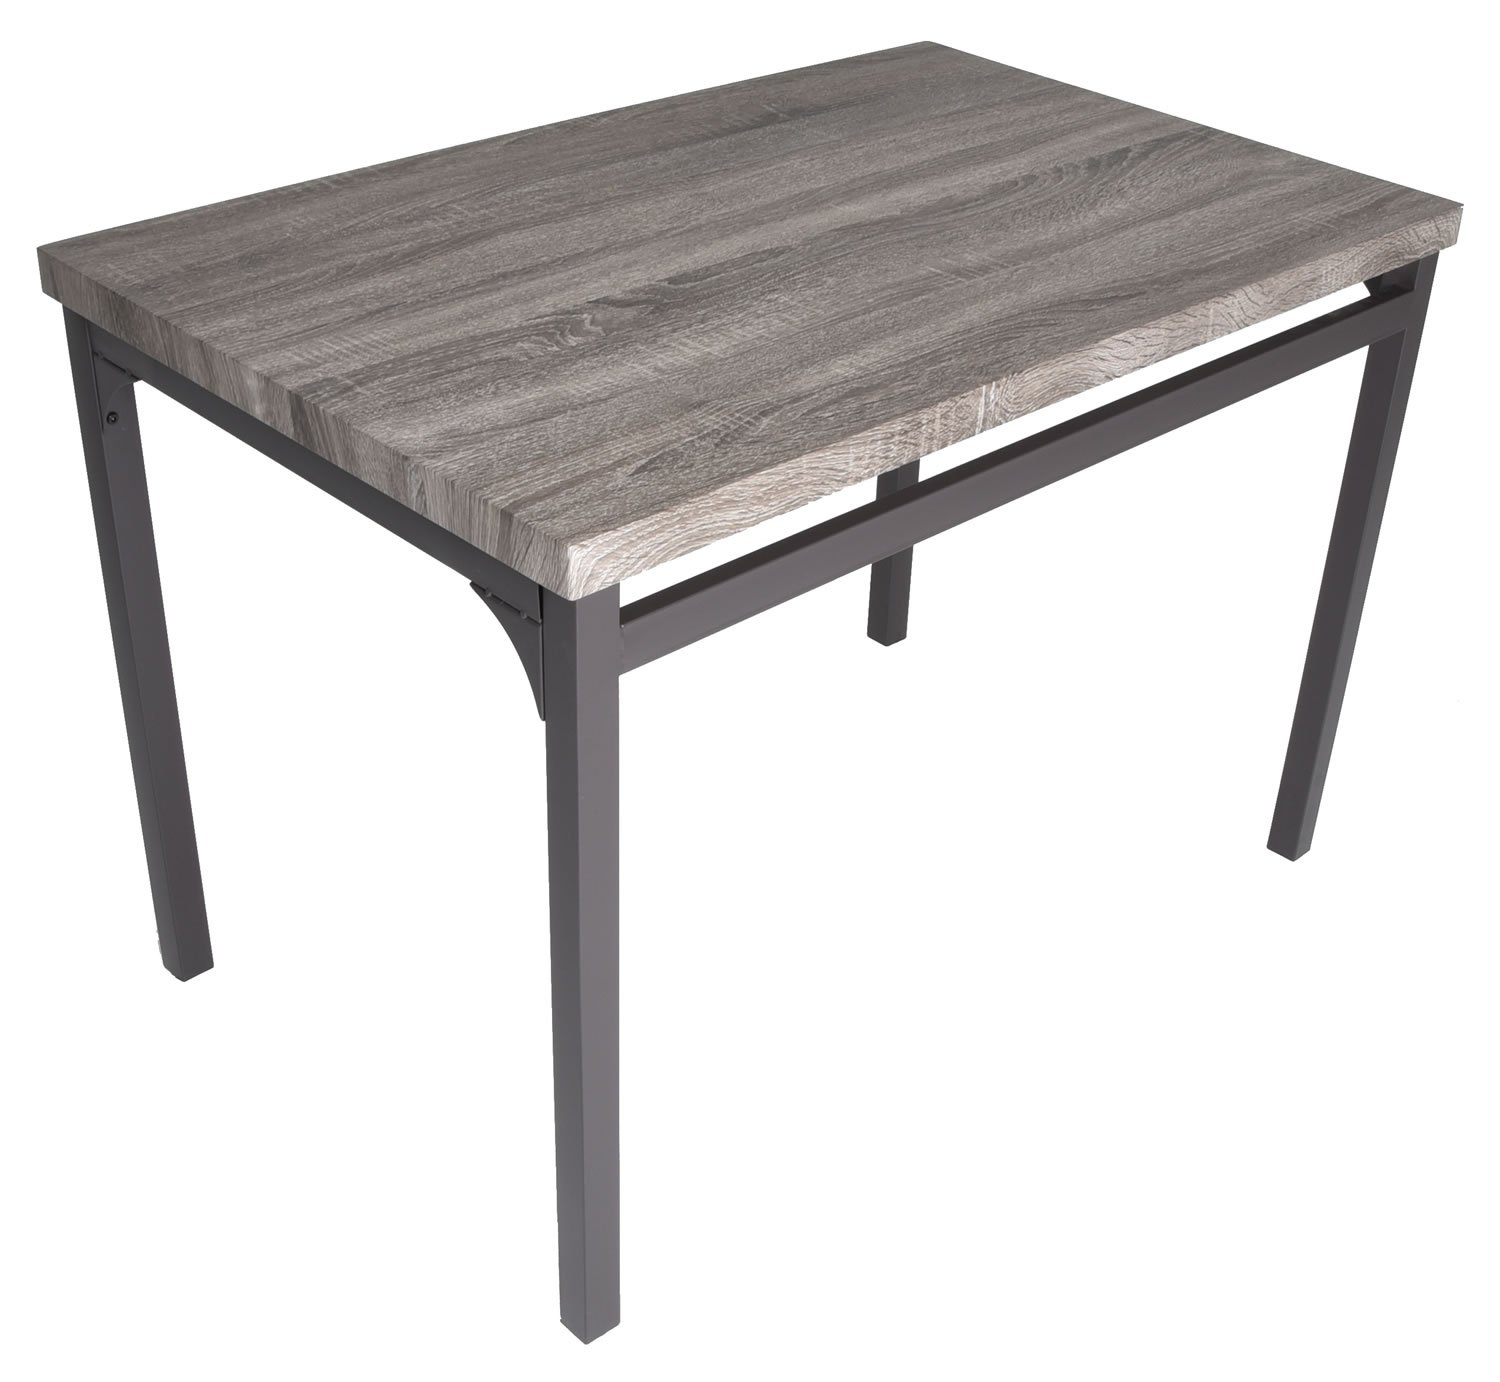 Zenvida 5 Piece Dining Set Rustic Grey Wooden Kitchen Table and 4 Chairs by Zenvida (Image #5)